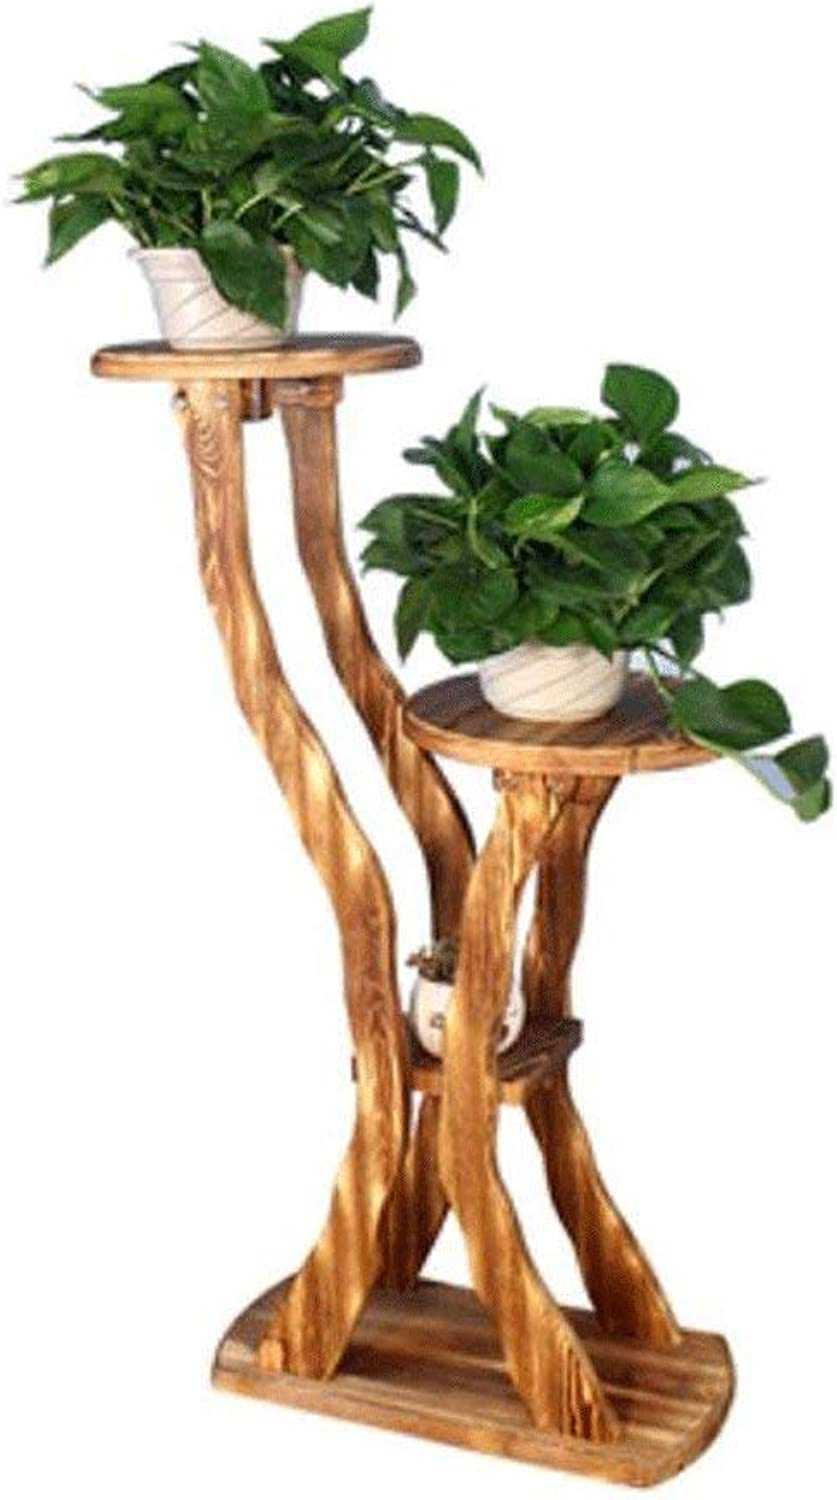 Gifts & Decor Plant Stand Shelf Flower Racks Solid Wood Multi-Storey Floor Flowers Frame Flowers Woods Balcony Balcony Living Room Interior Radish (color   A)